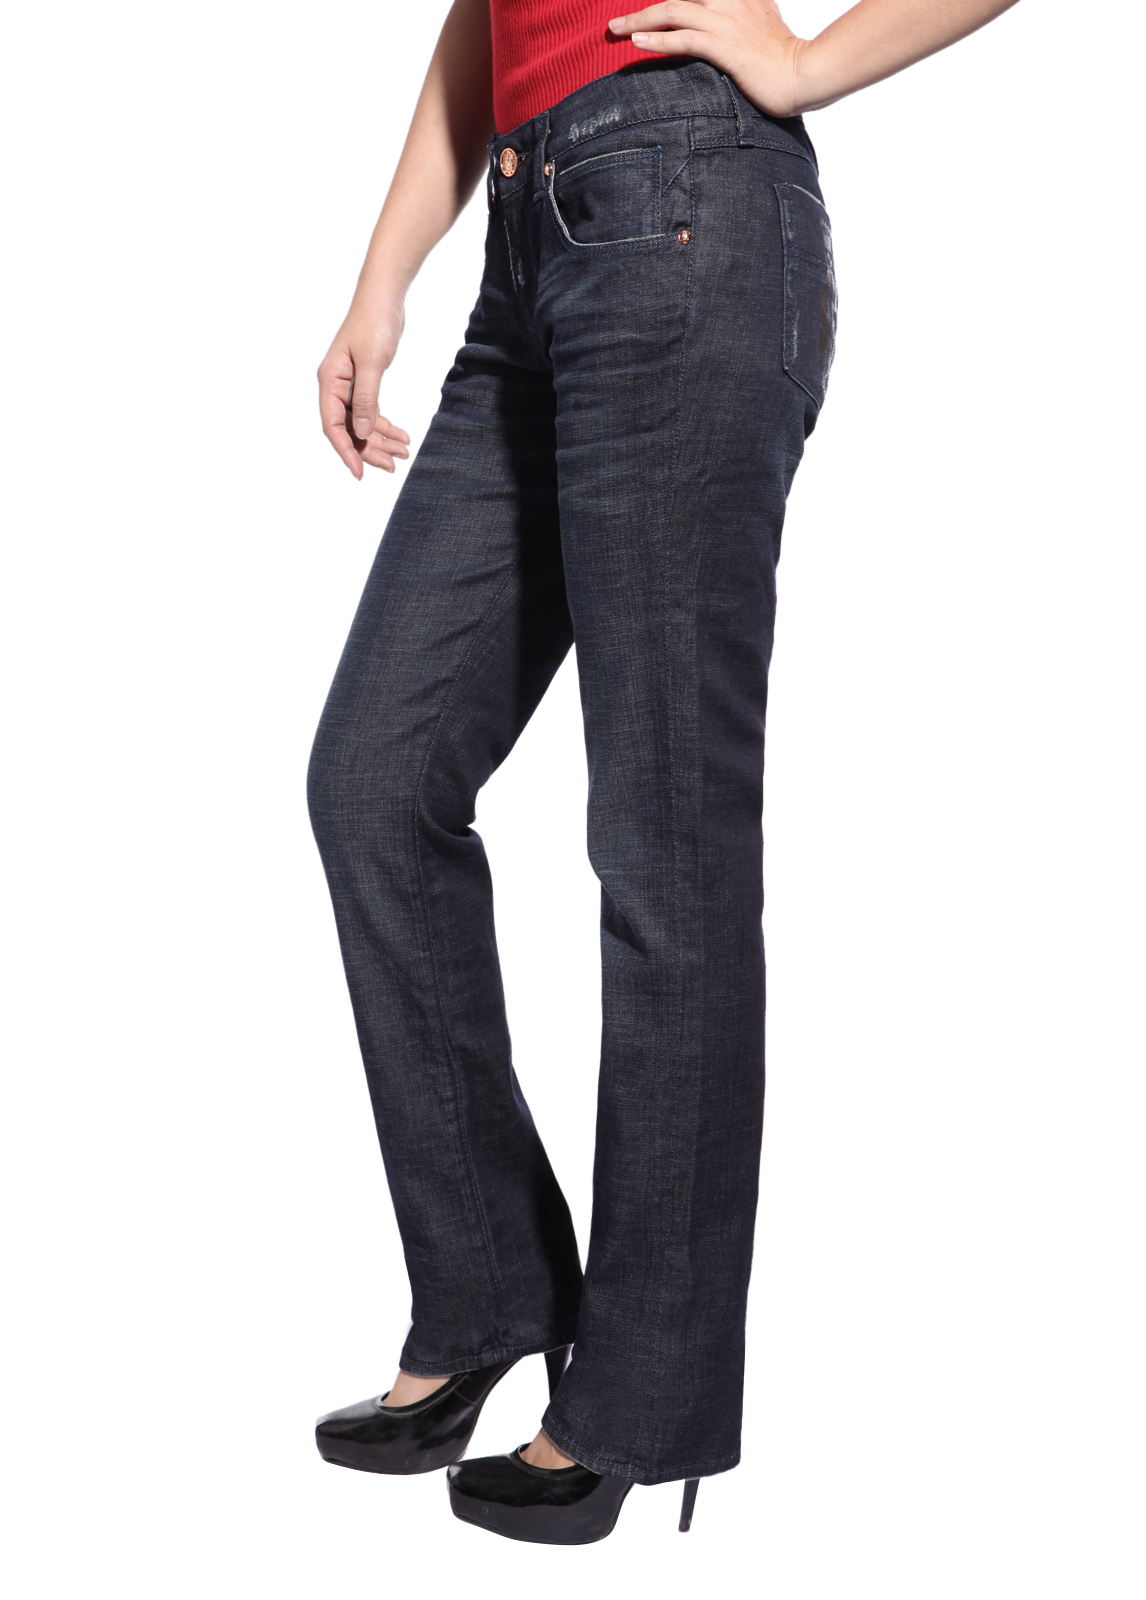 A casual wear favorite, these stretch jeans by Lee feature functional five-pocket styling with back pocket embroidery, relaxed fit, and a straight leg profile. Inseam measures 31 inches, measured from a size 8.